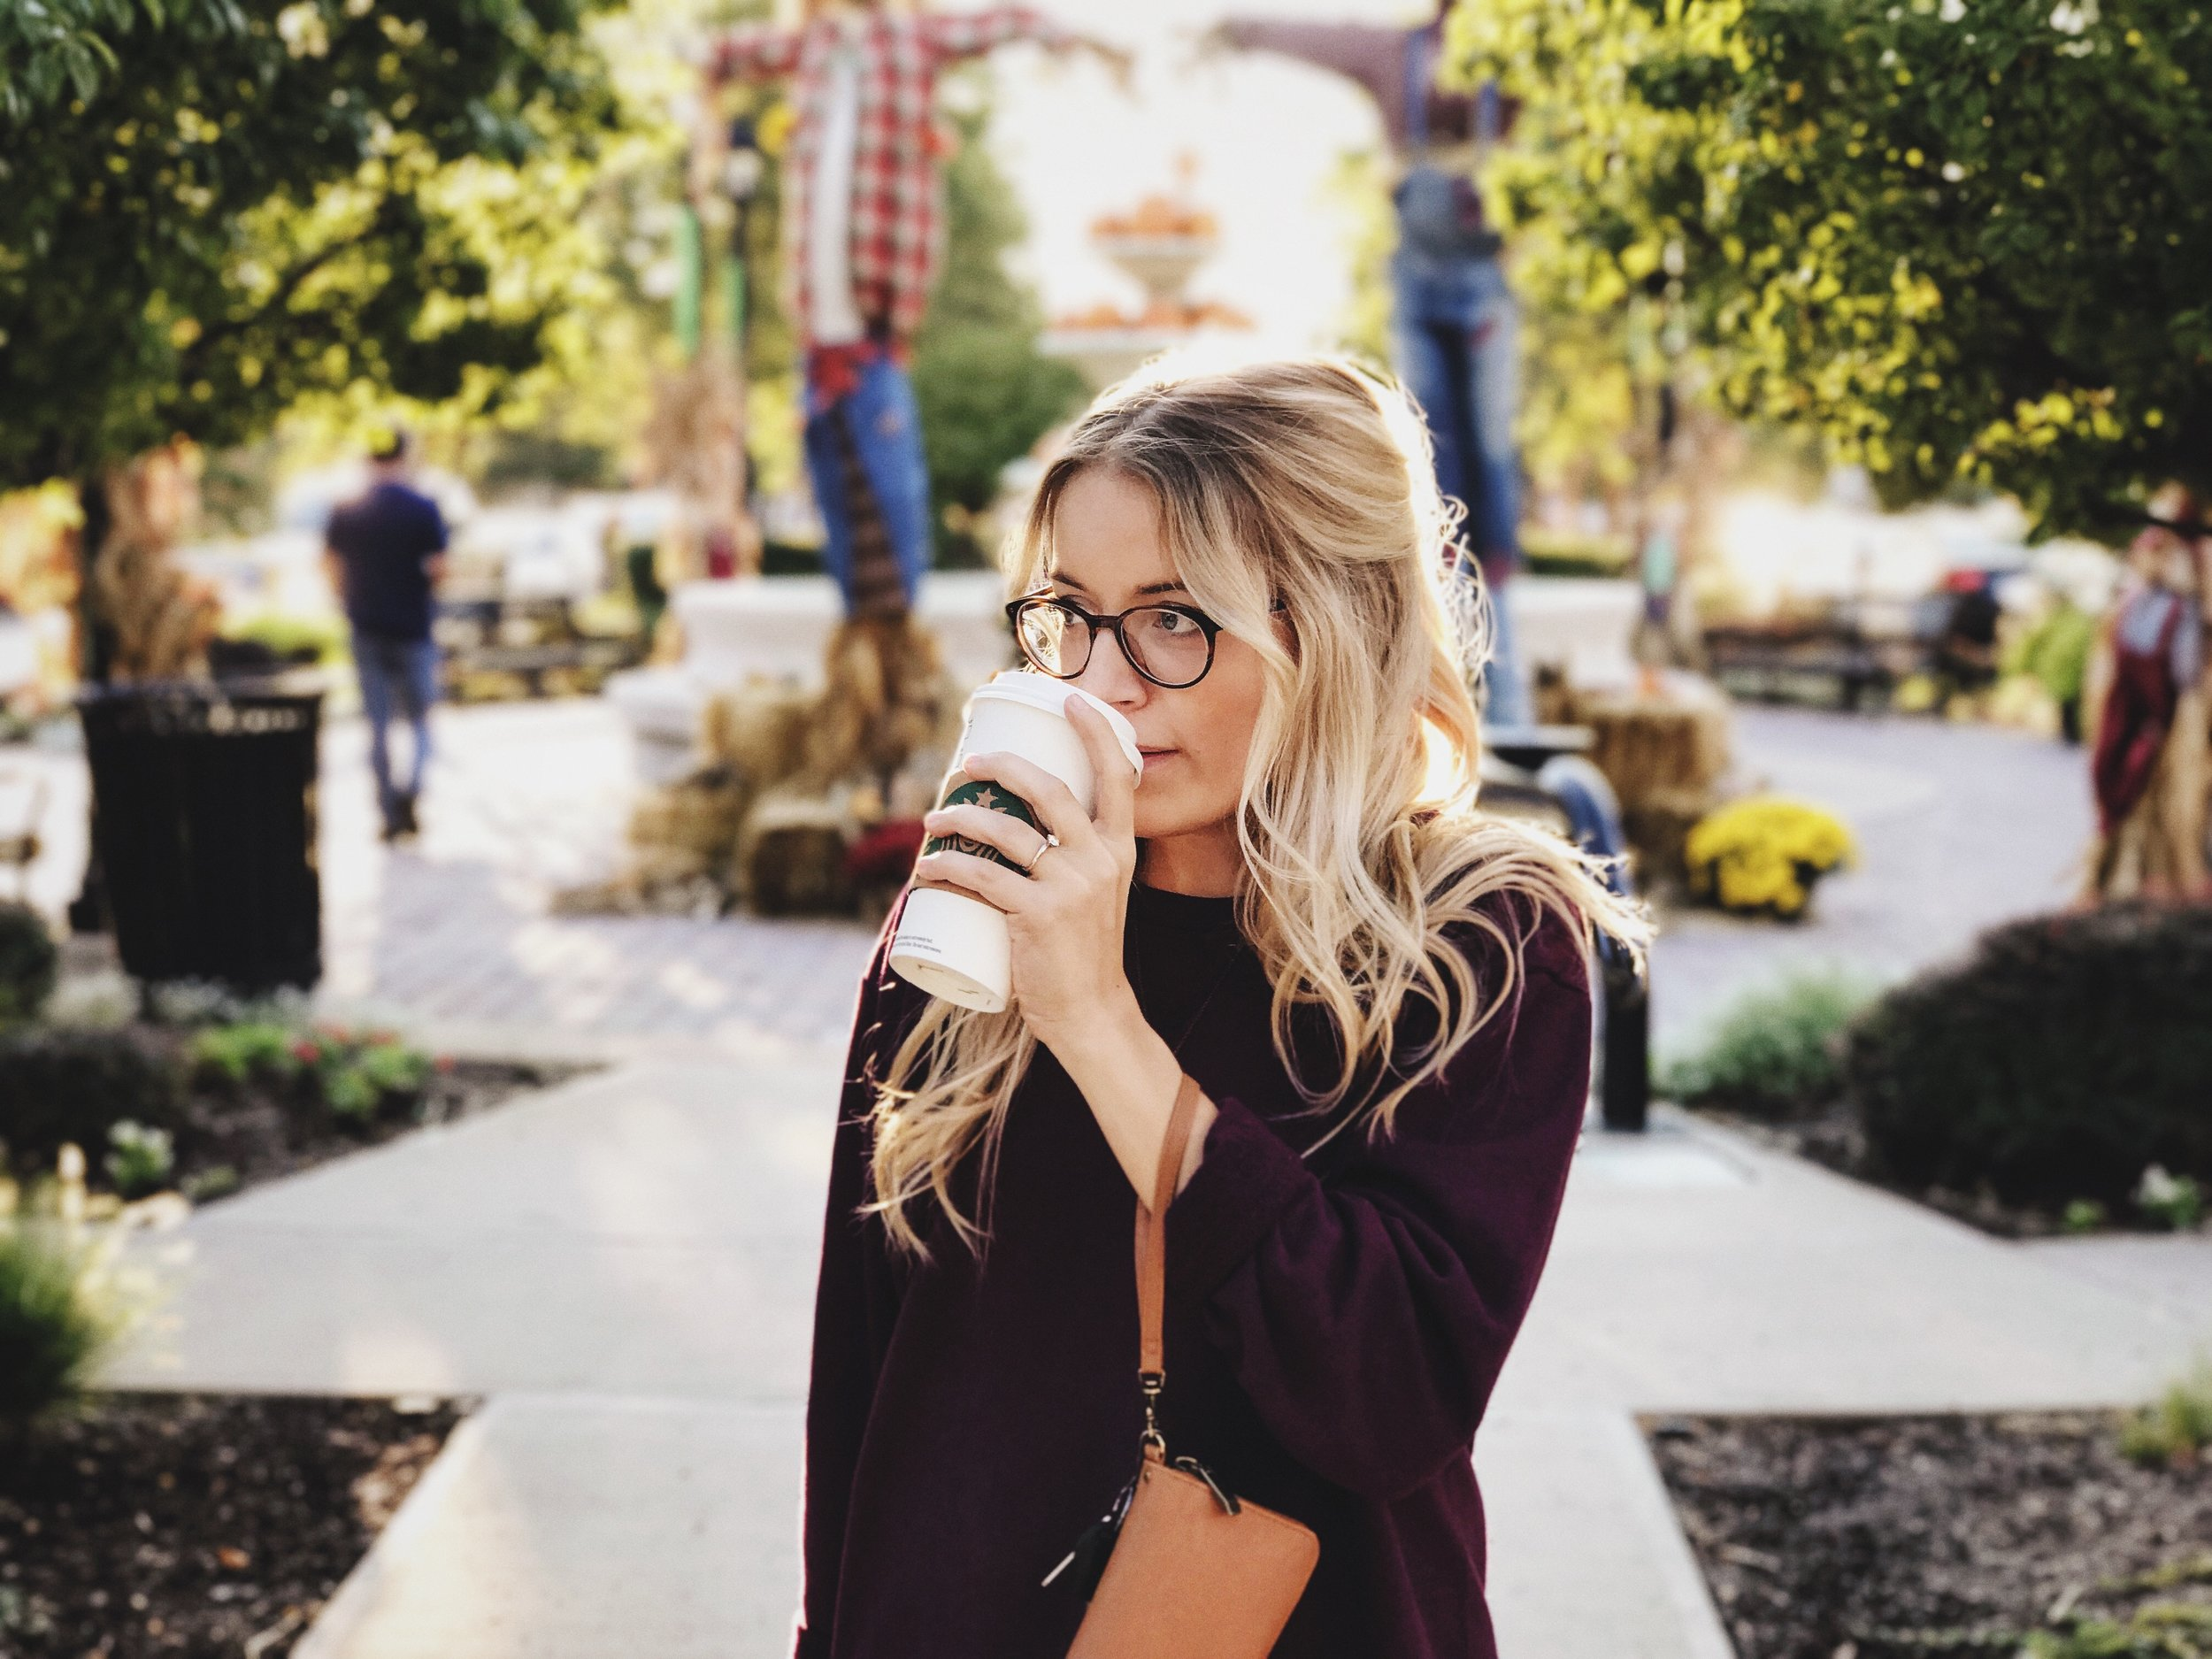 blonde girl wearing glasses  starbucks  drink